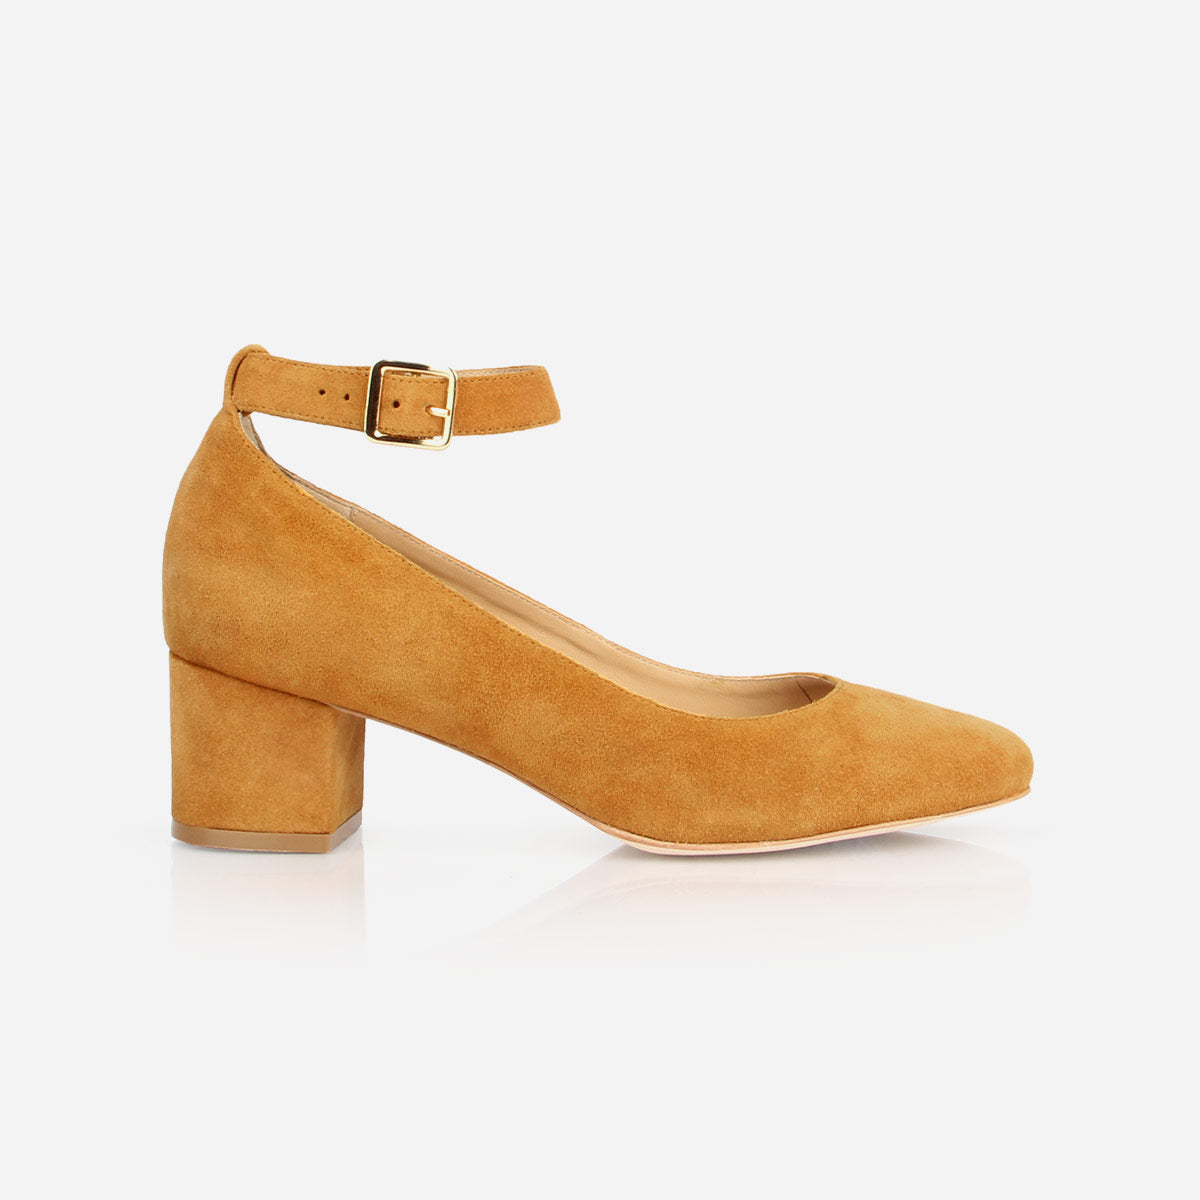 The Rosemont Mary-Jane Ochre Suede - Poppy Barley